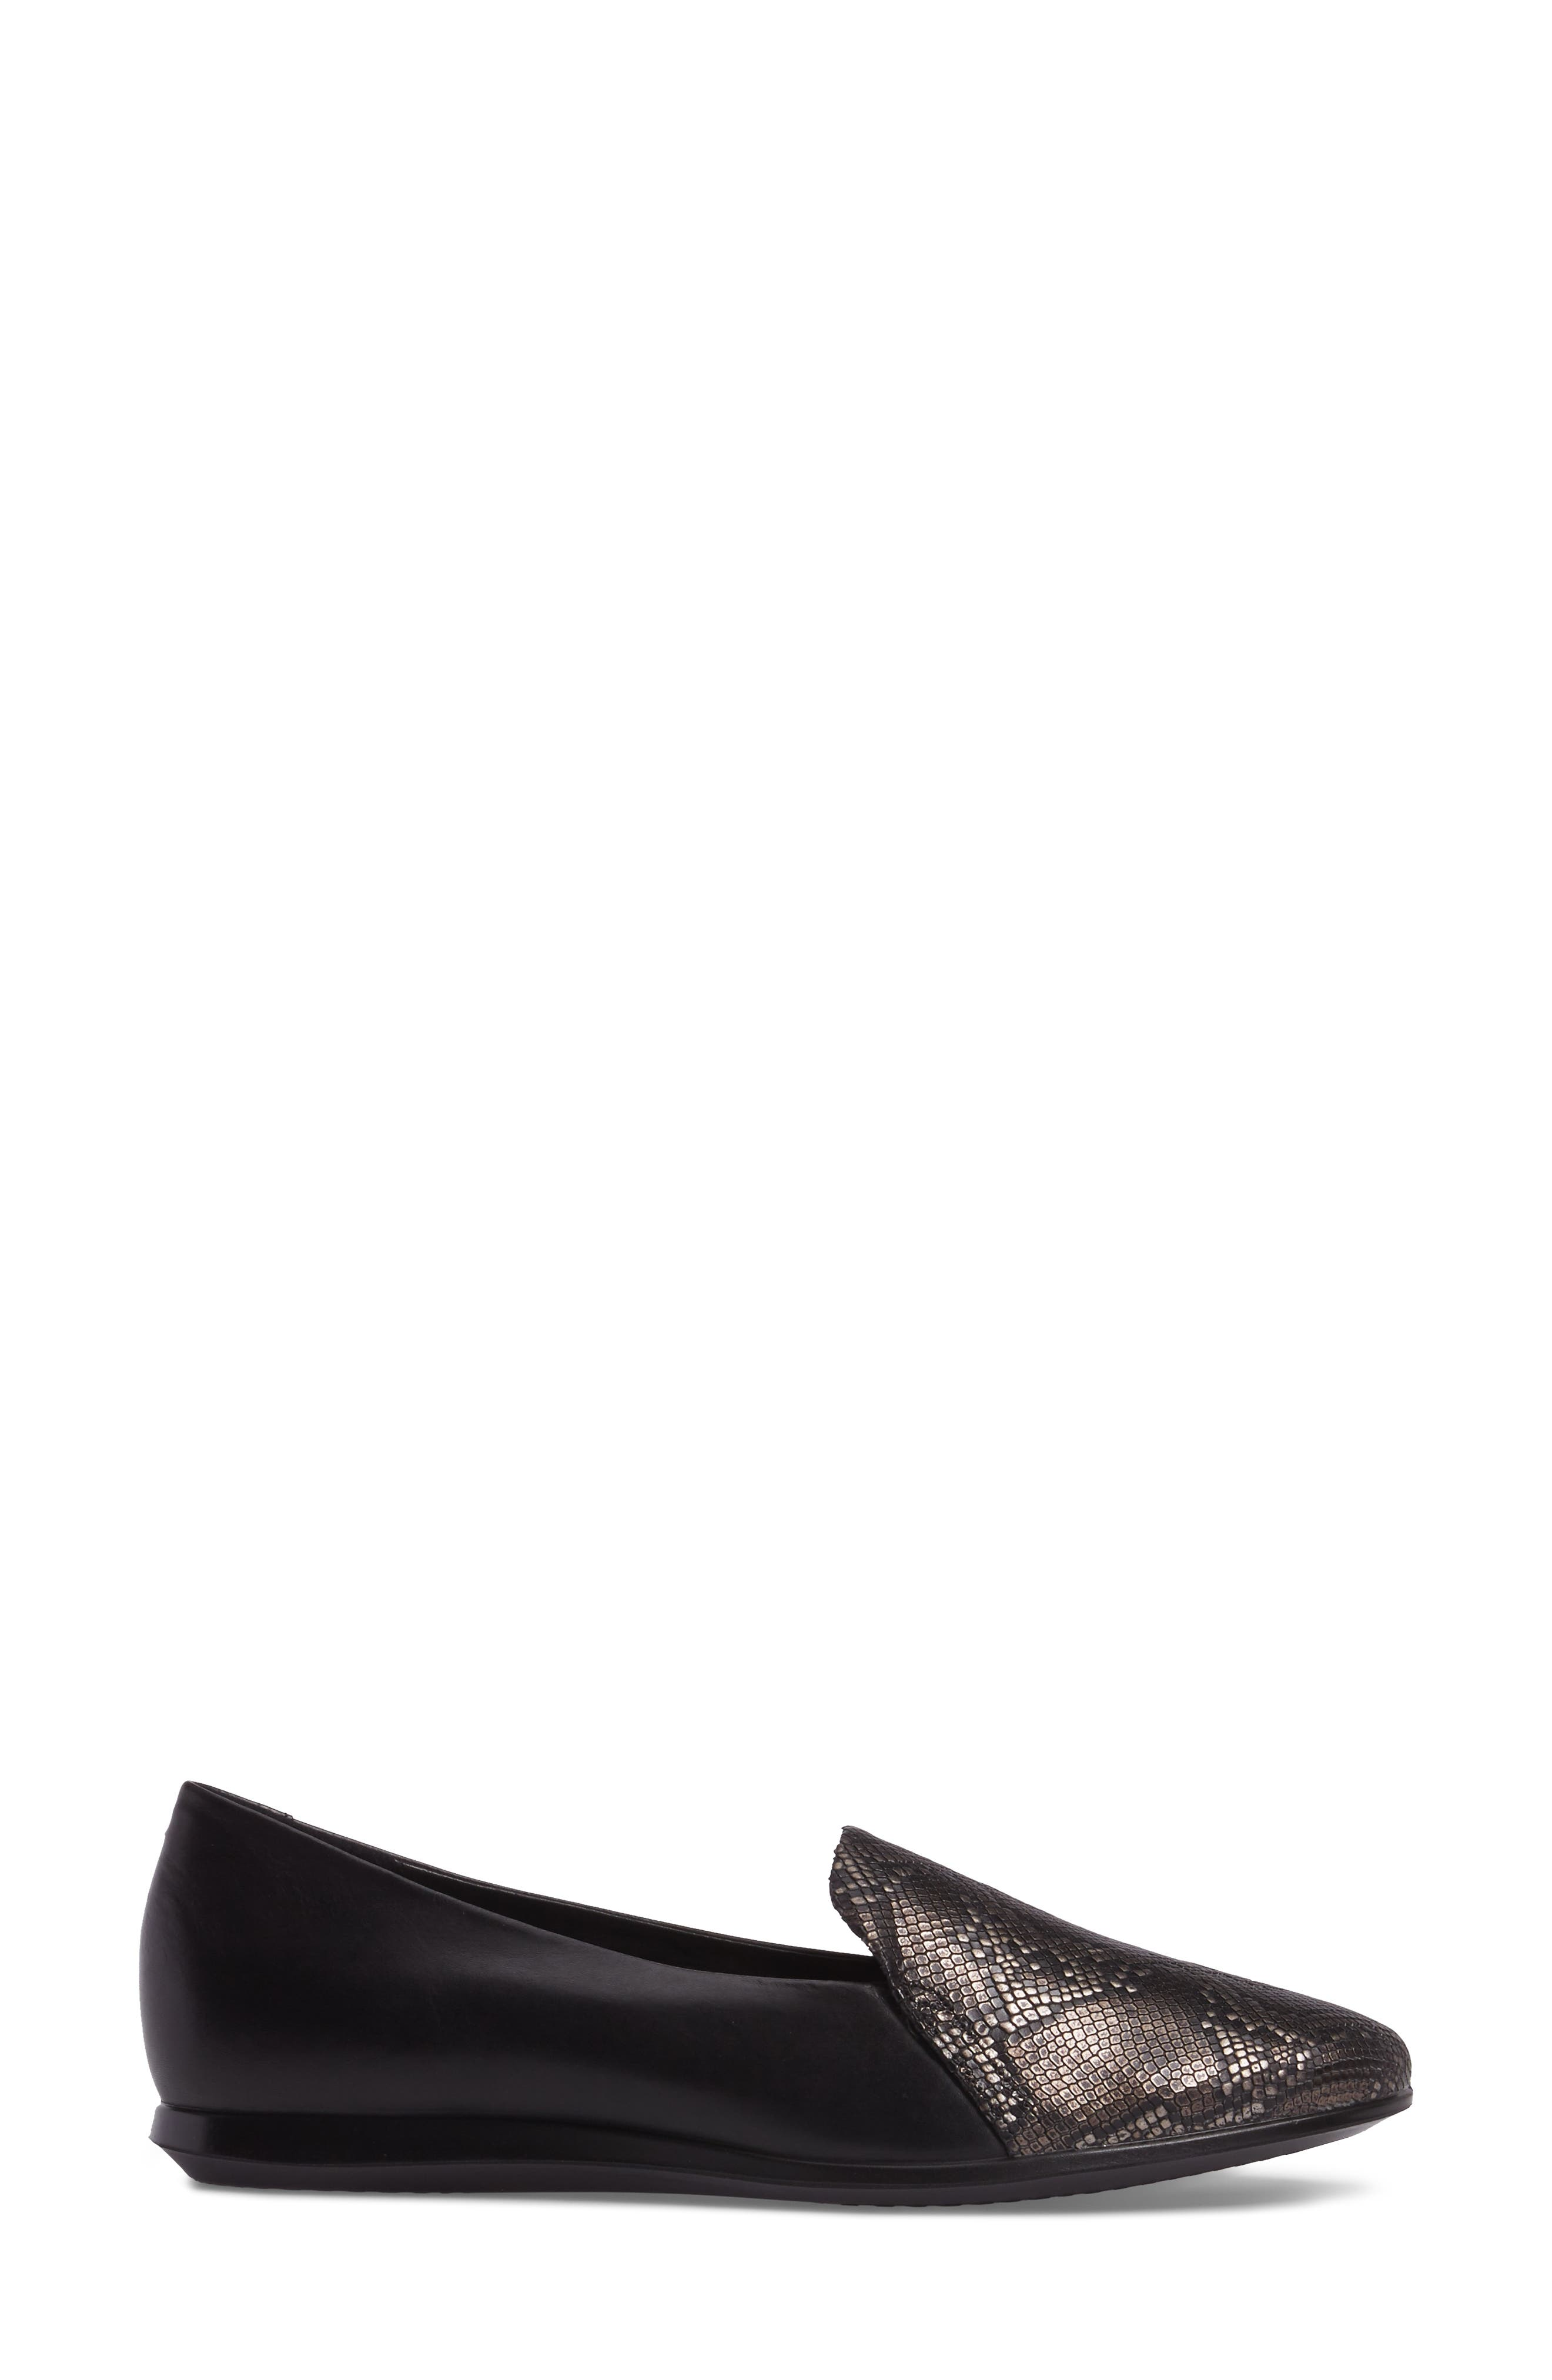 Touch 2.0 Scale Embossed Loafer Flat,                             Alternate thumbnail 3, color,                             DARK SHADOW LEATHER